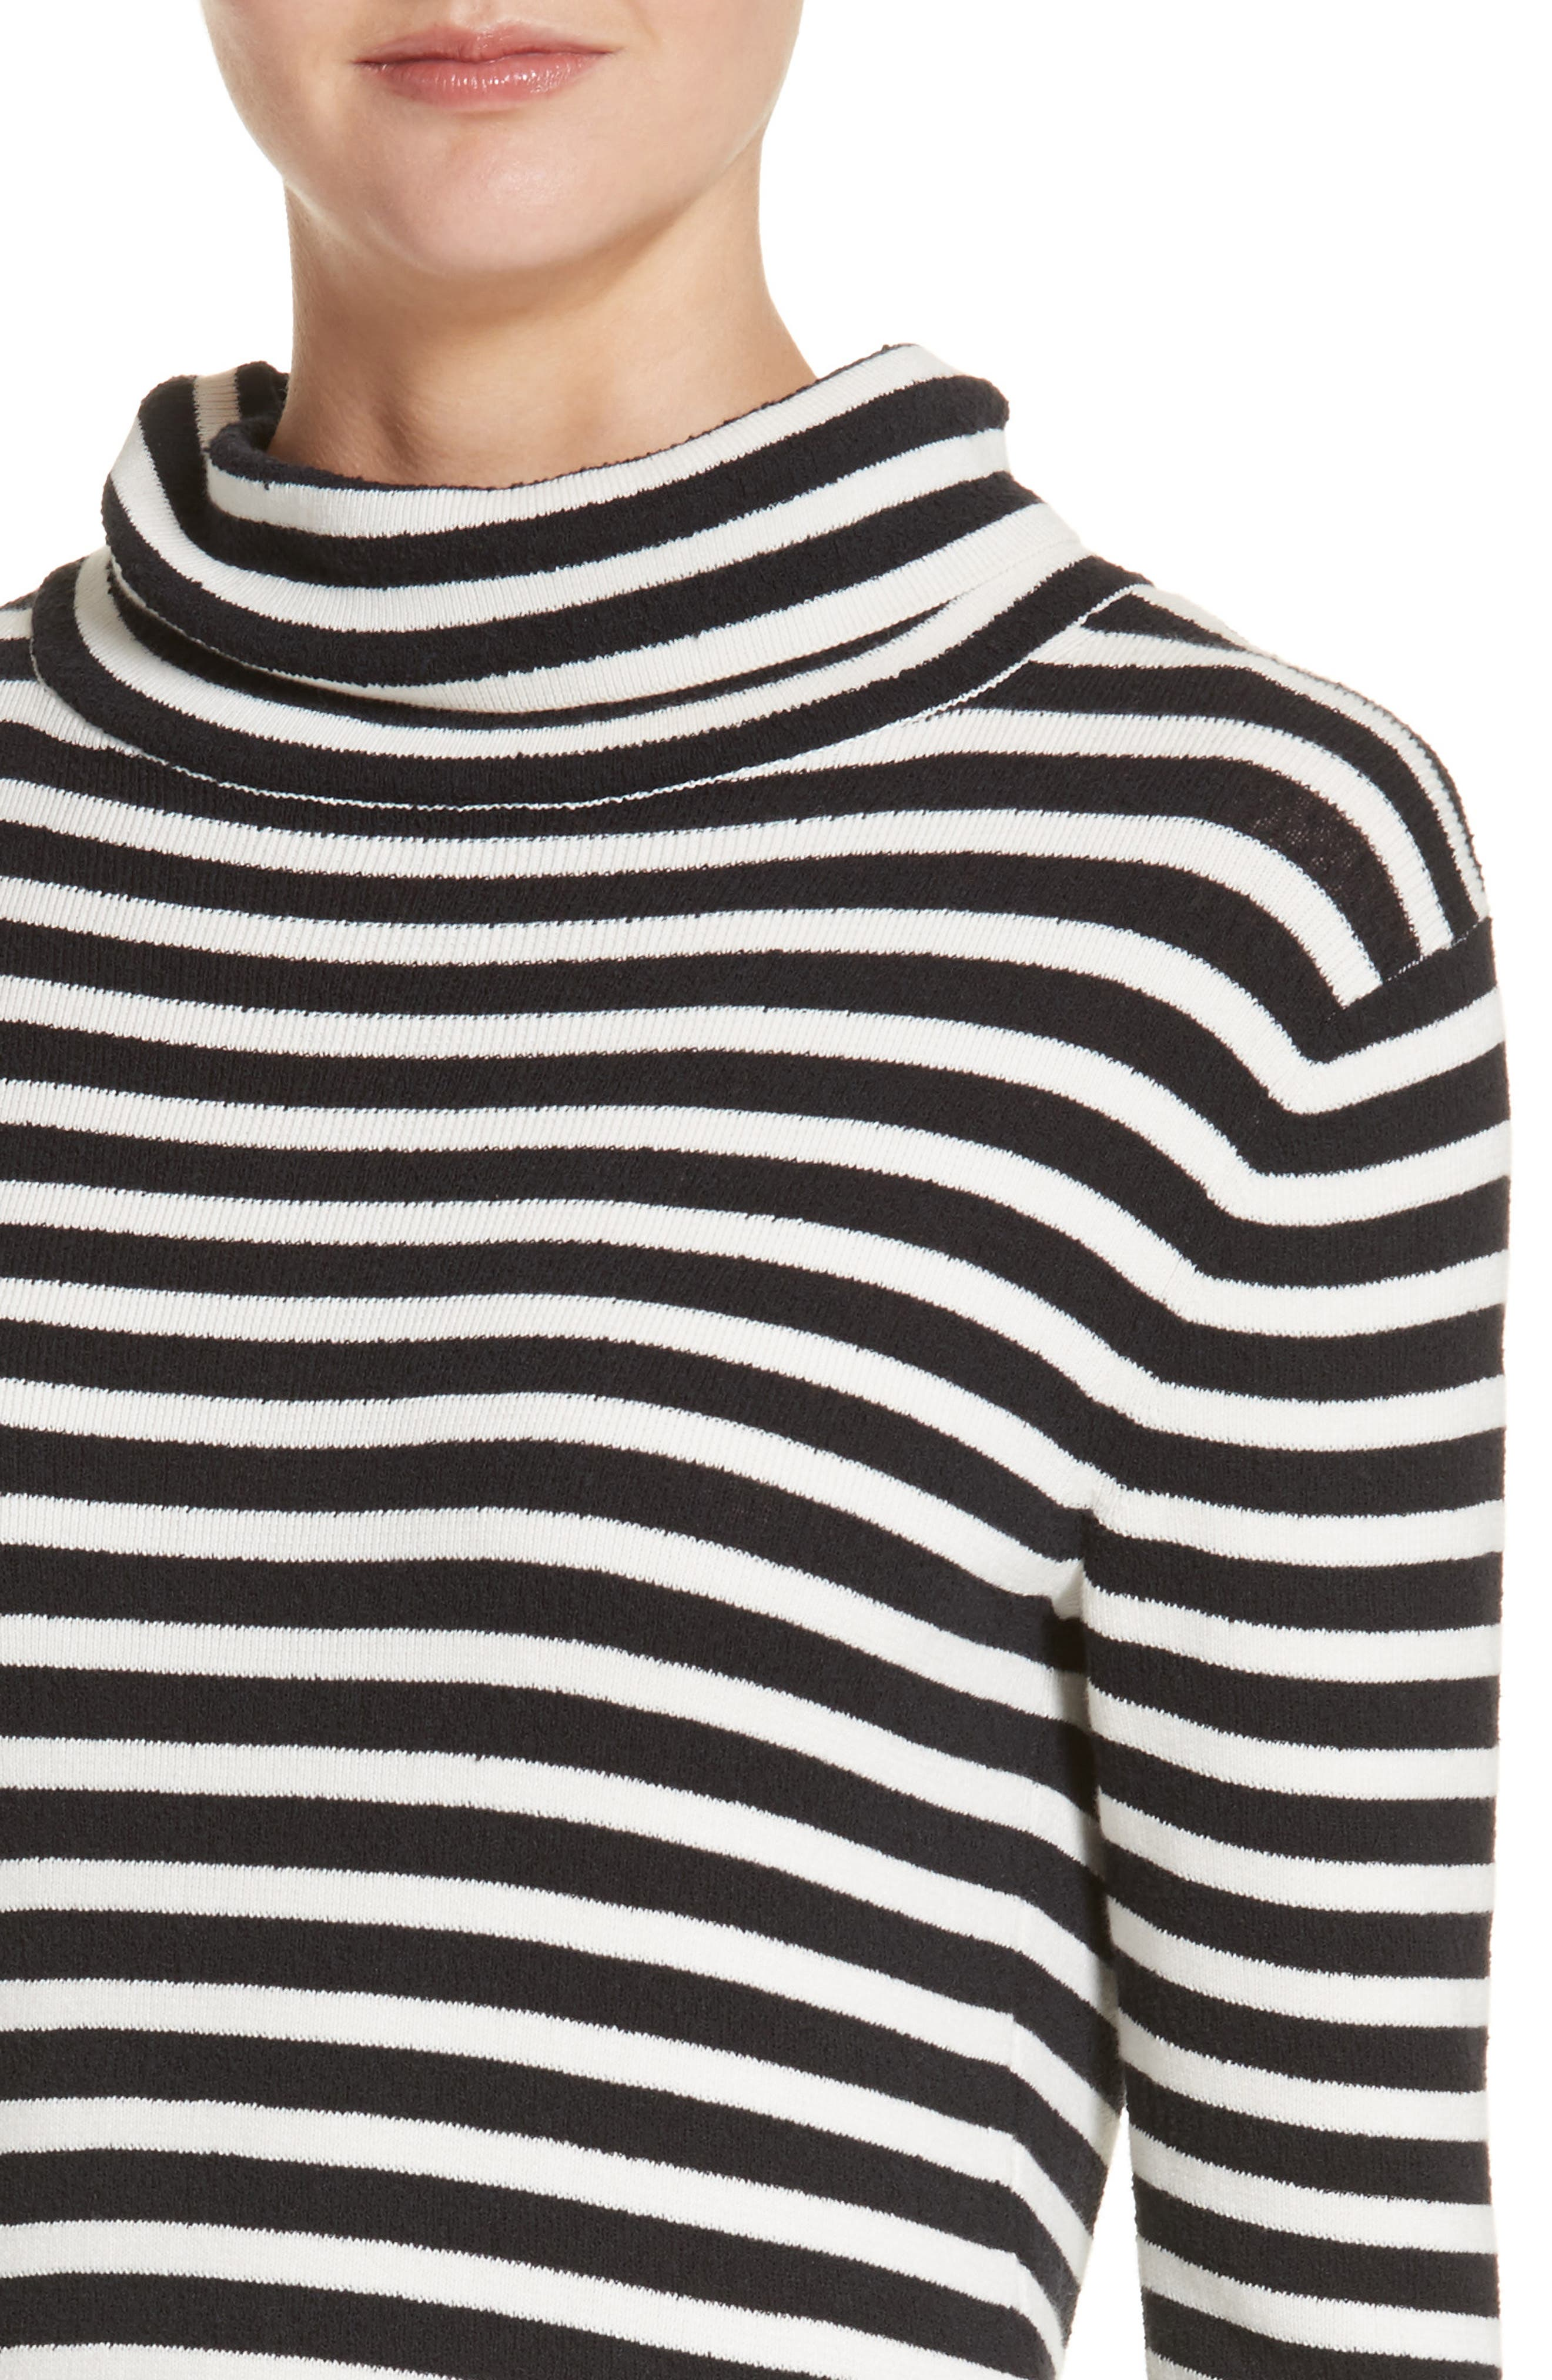 Stripe Cowl Neck Dress,                             Alternate thumbnail 4, color,                             Black/ Ivory